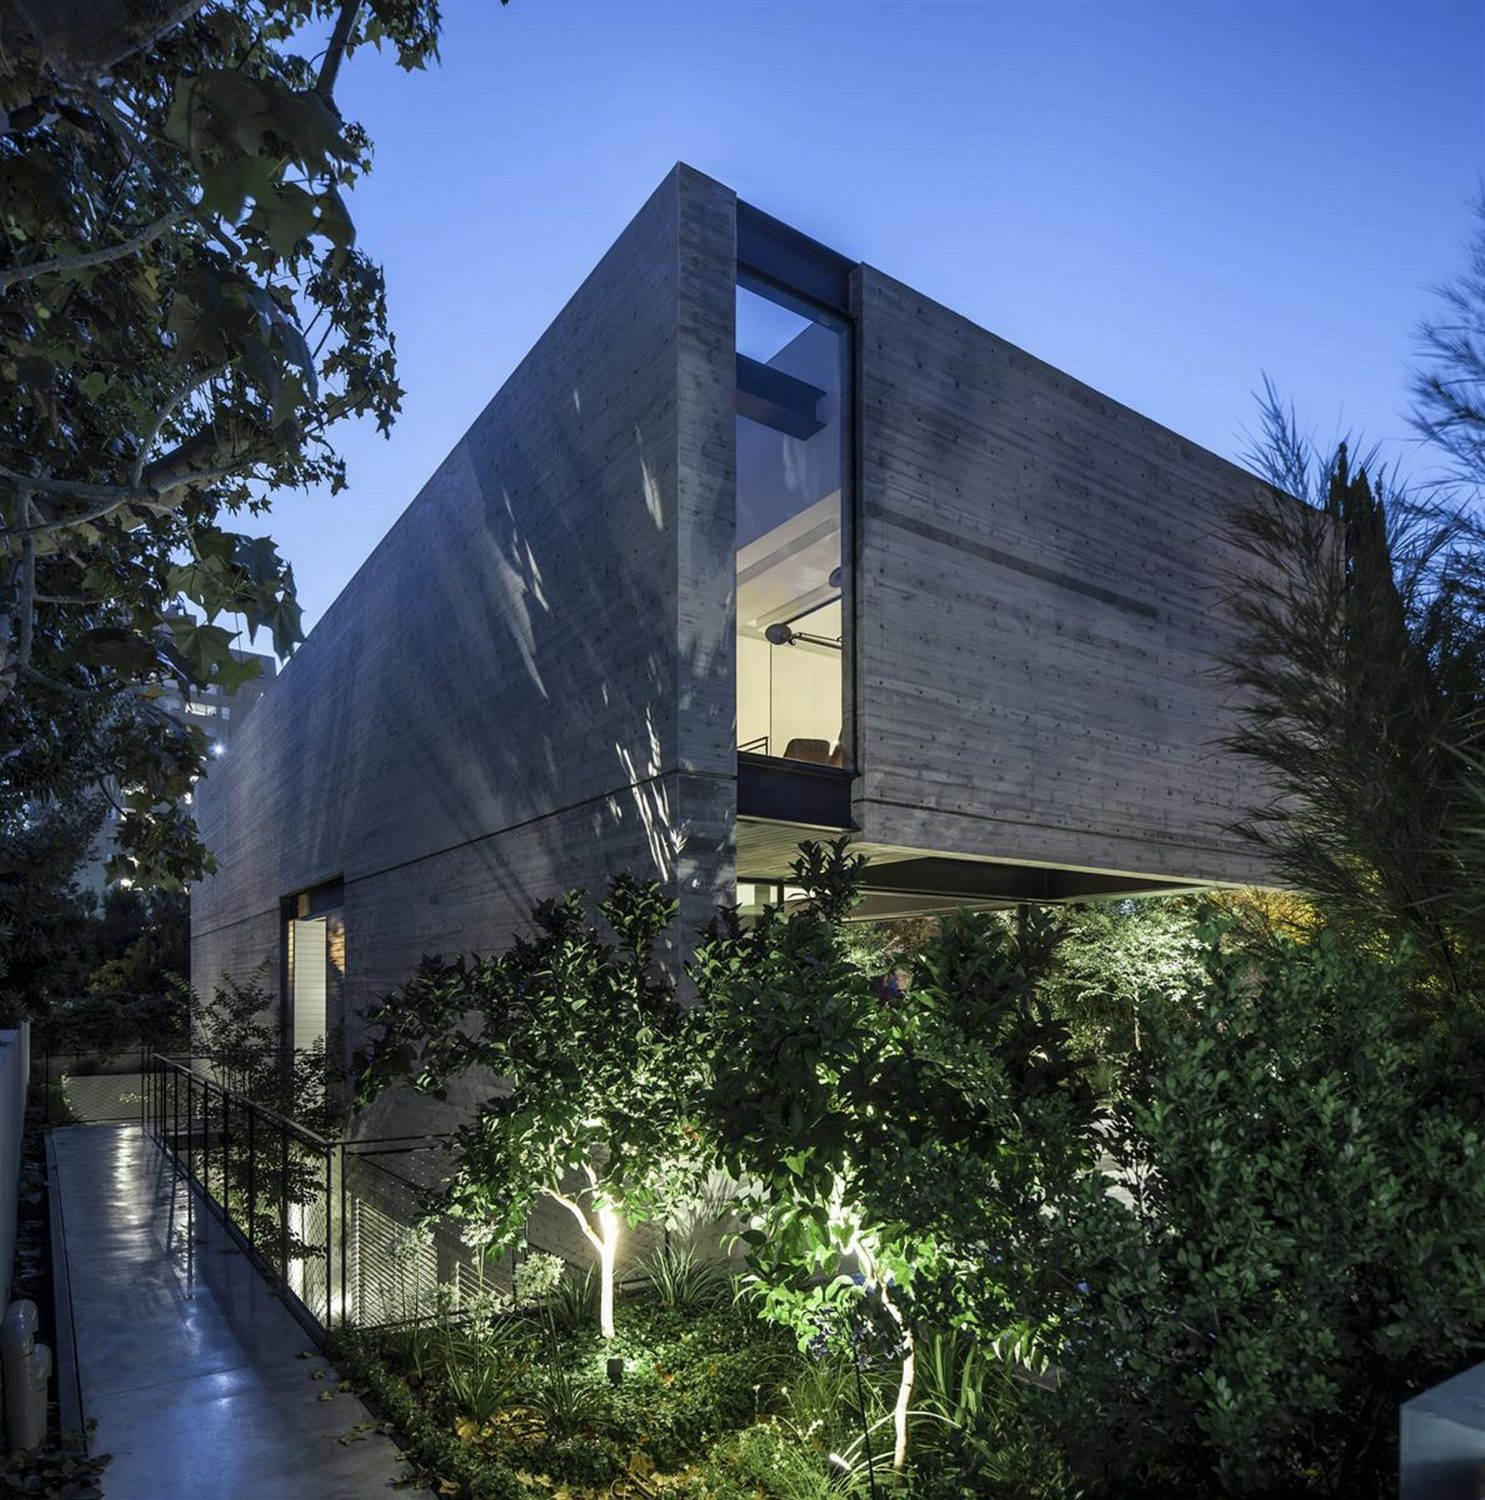 SB House by Pitsou Kedem Architects